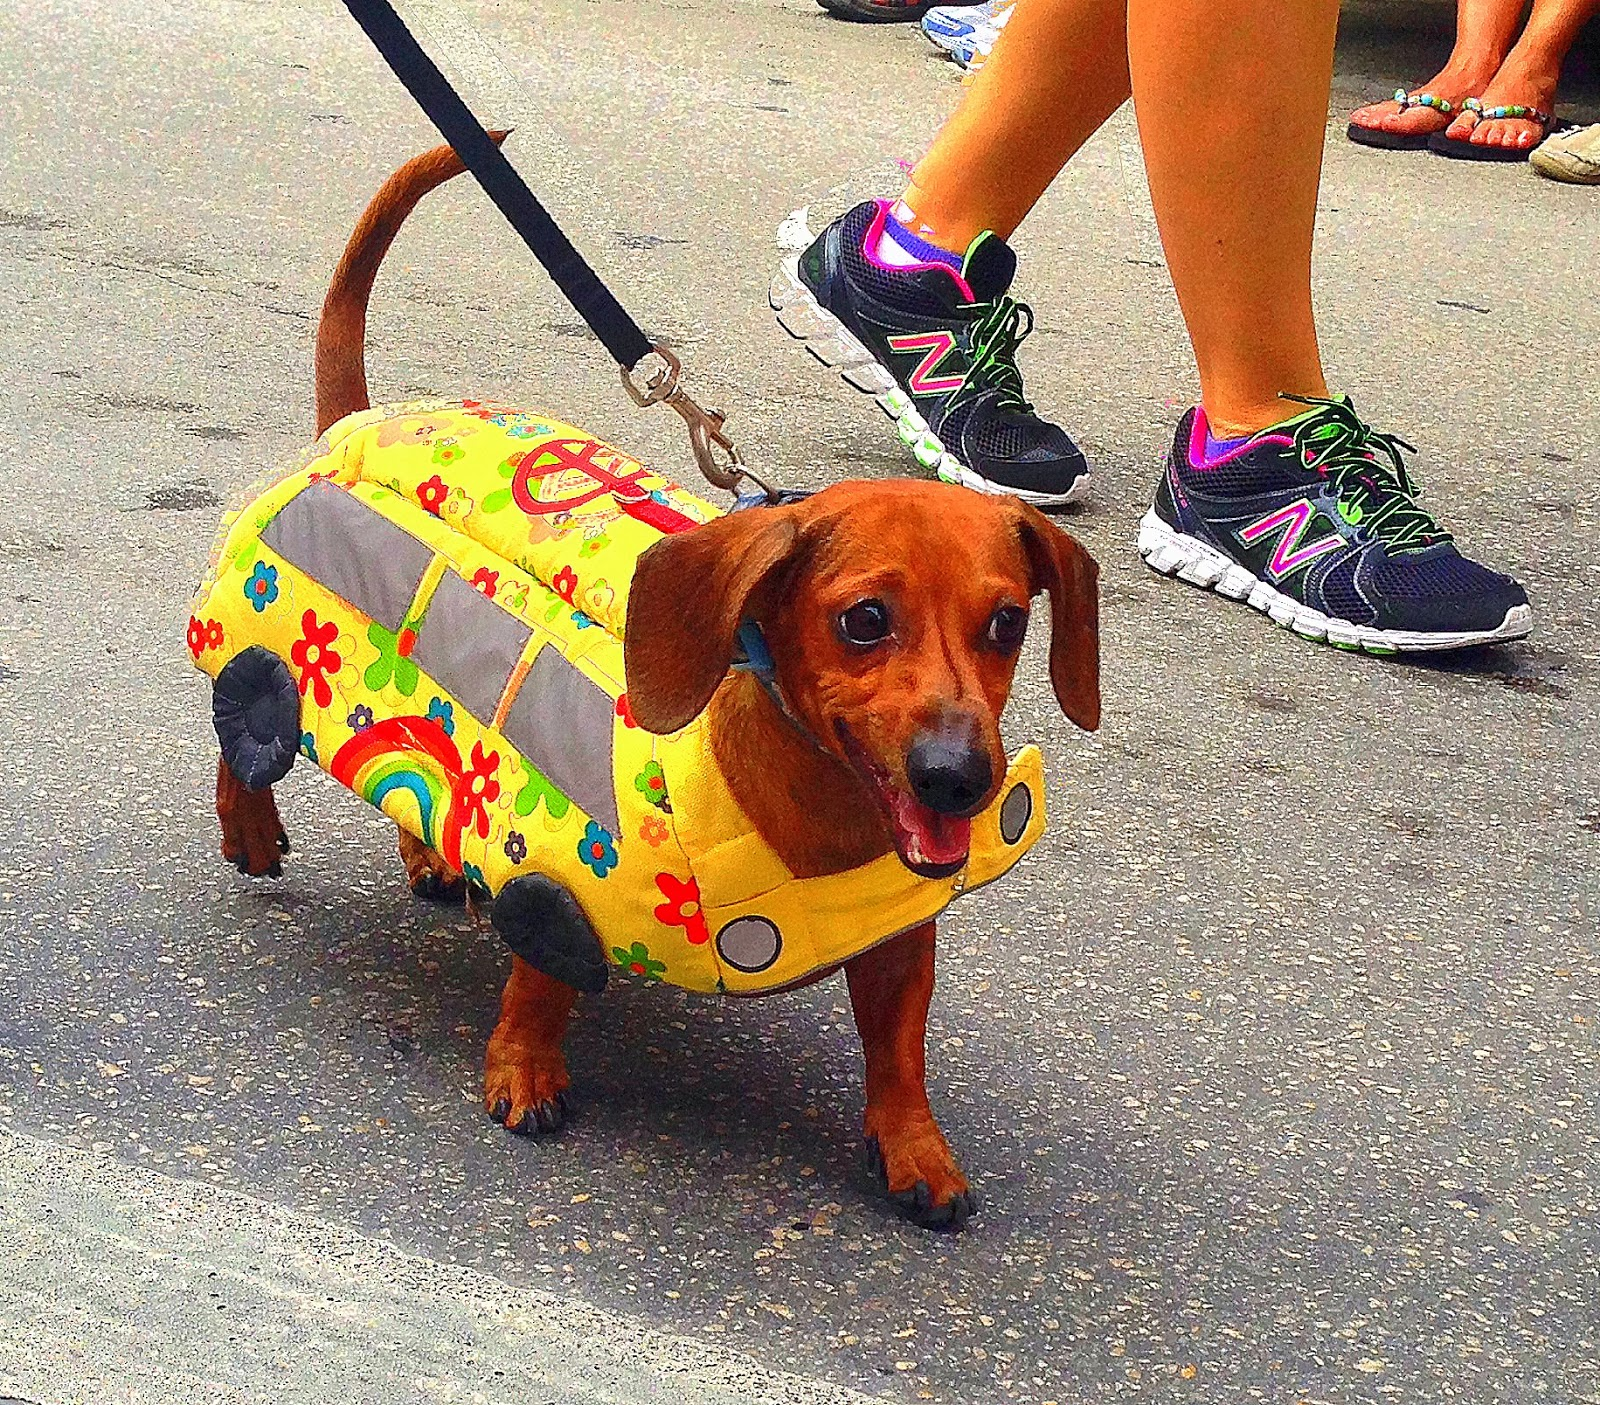 Come Home to Paradise: Walking in a Wiener Wonderland